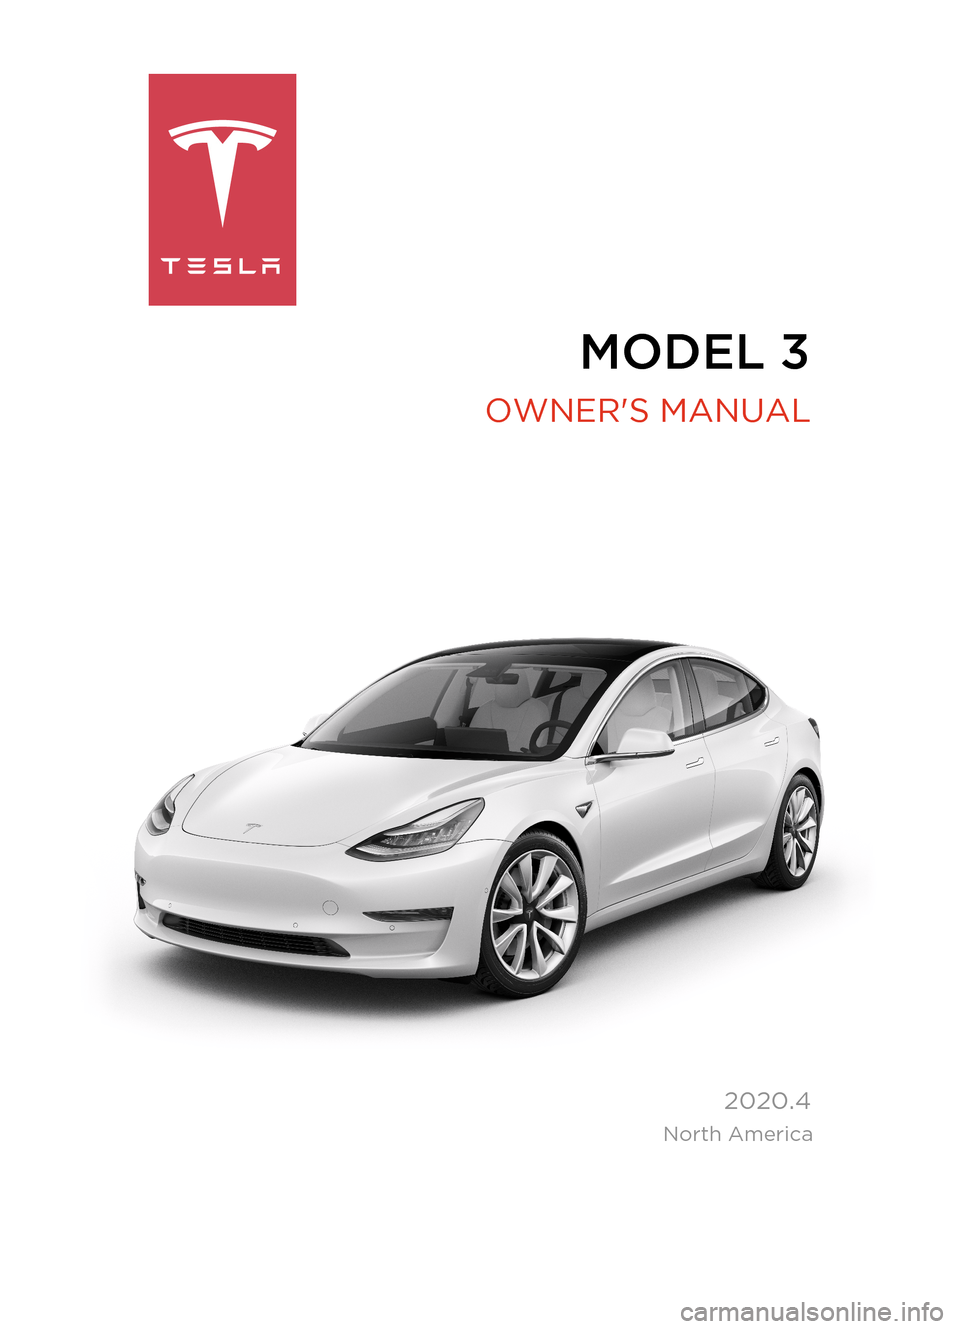 TESLA MODEL 3 2020  Owners Manuals MODEL  3  2020.4   OWNERS MANUAL  North America